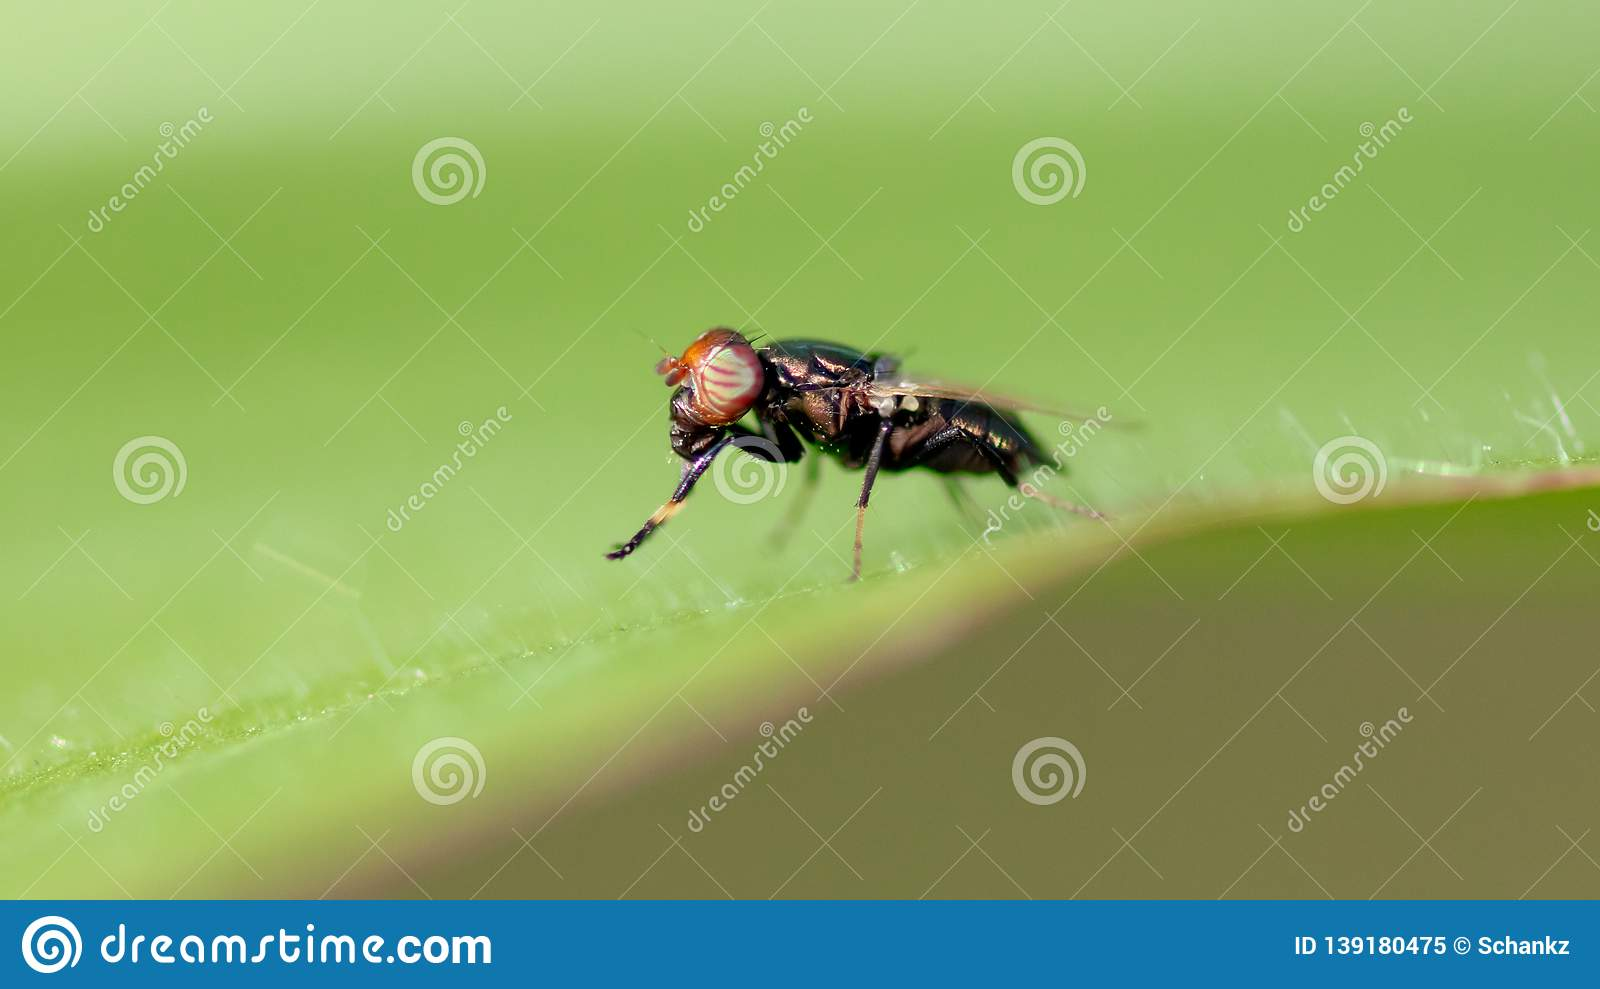 Fly on a green leaf in nature